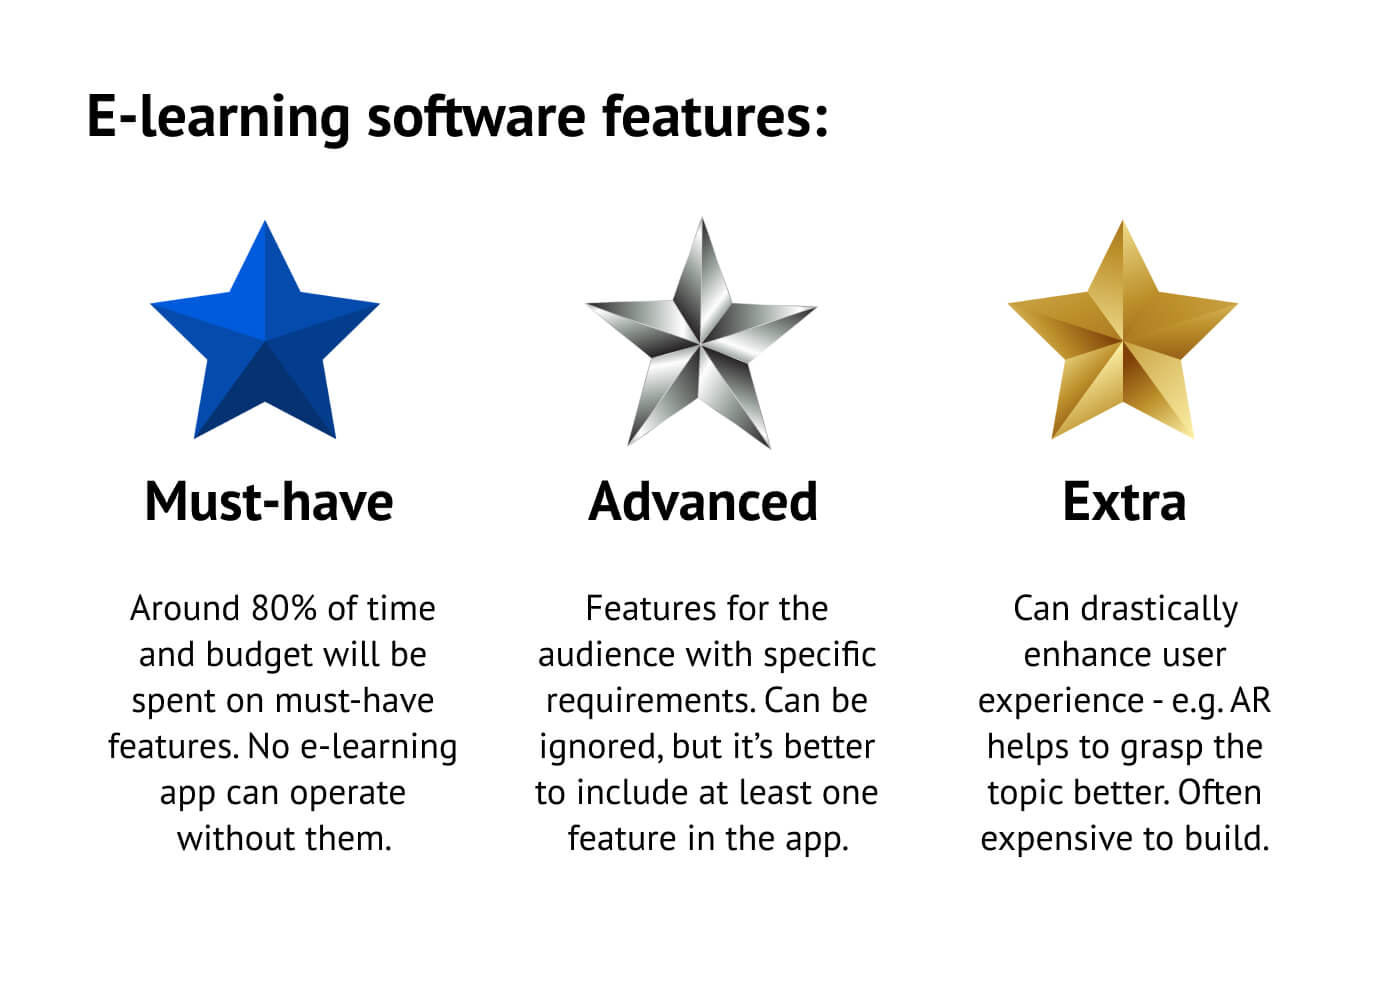 E-learning software features